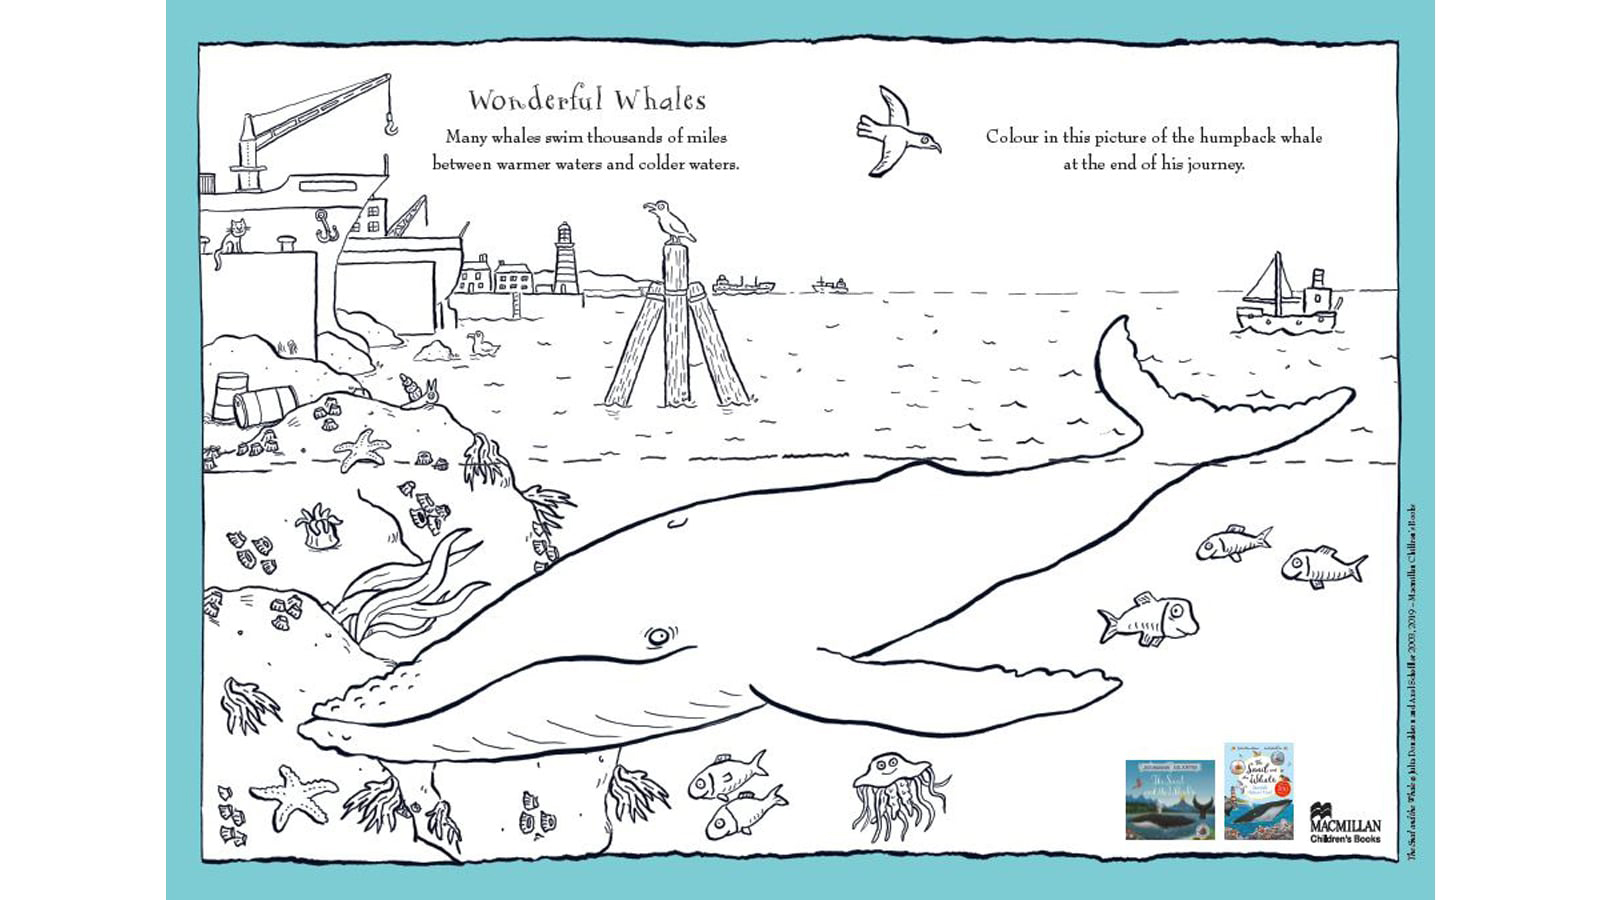 Wonderful-Whales-colouring-sheet-image